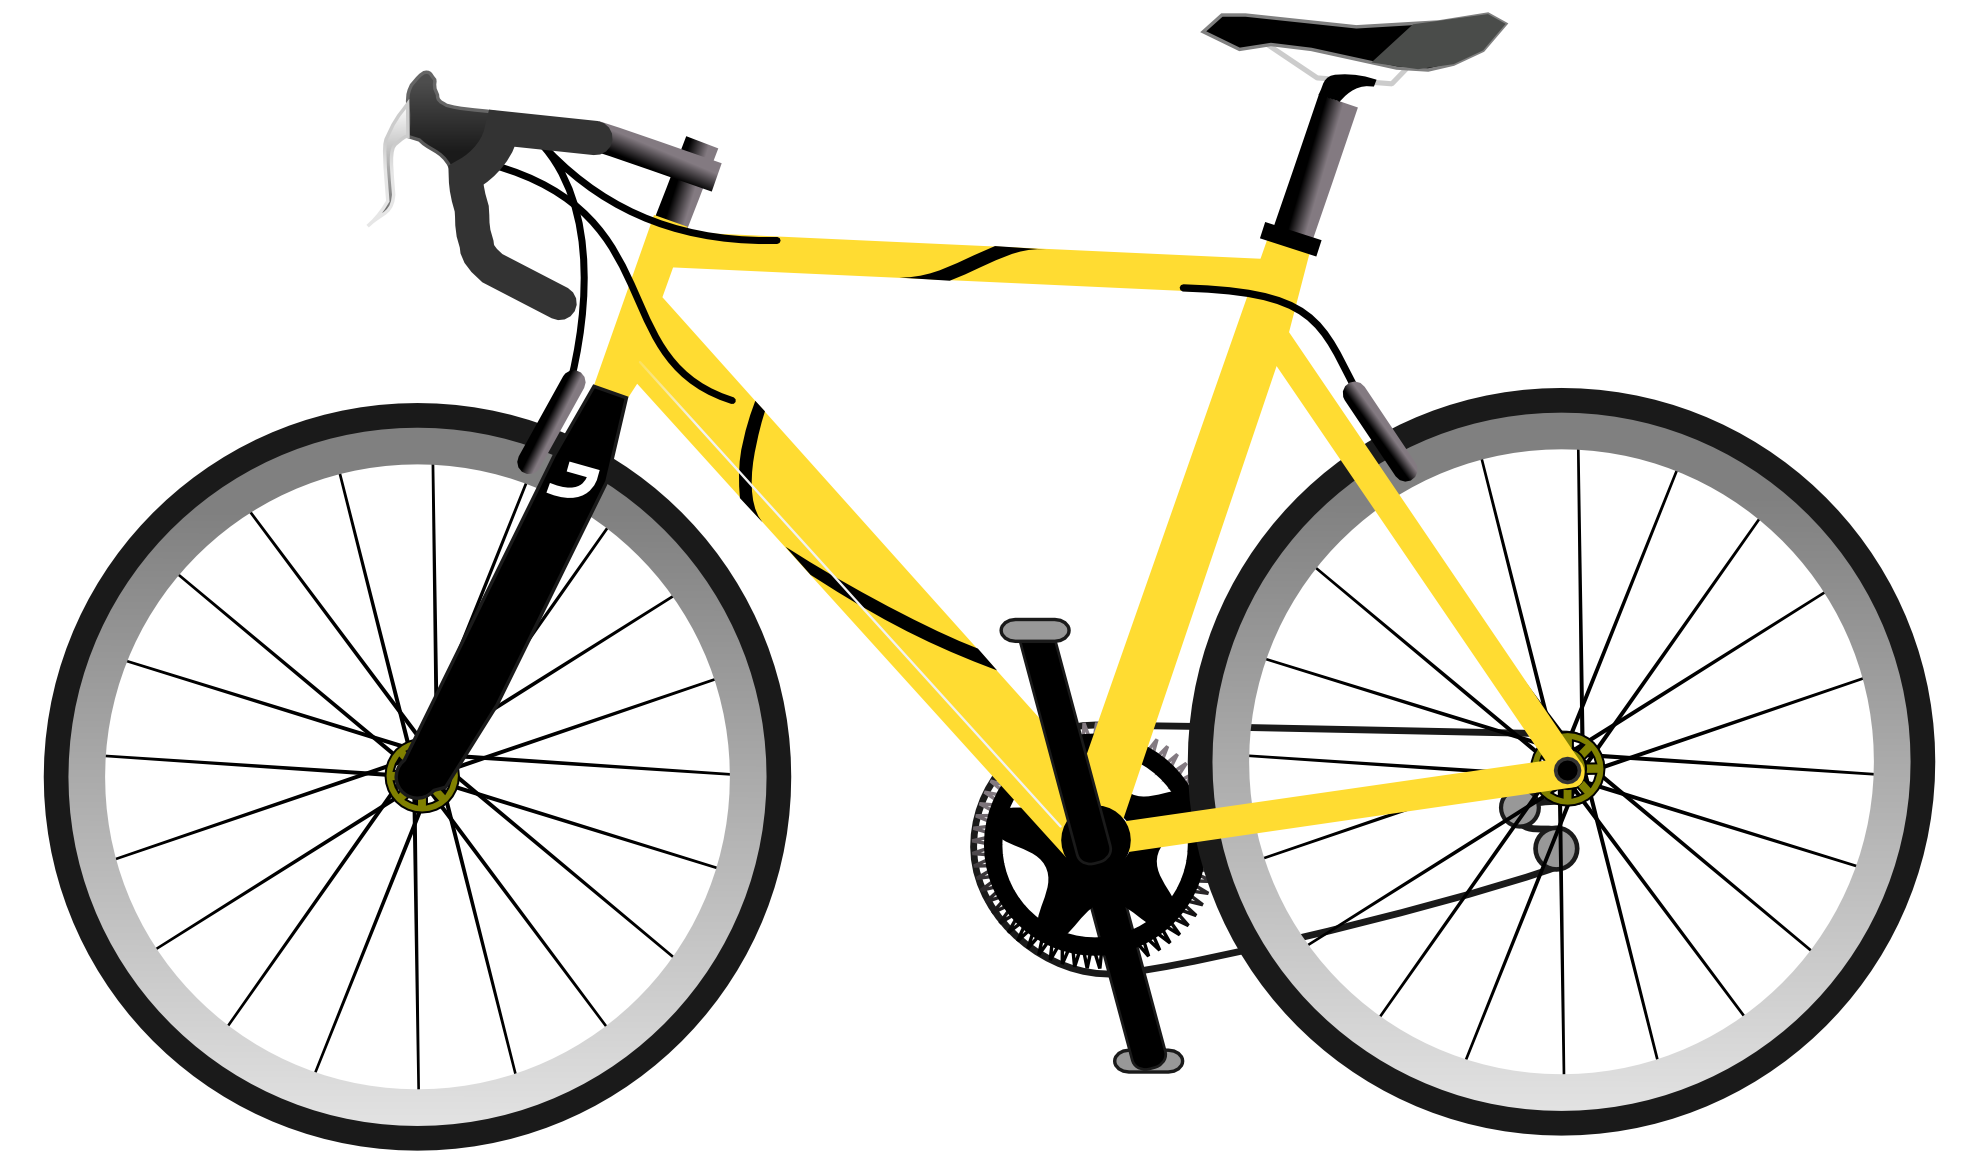 Cycling clipart cycling competition. Bicycle png image purepng